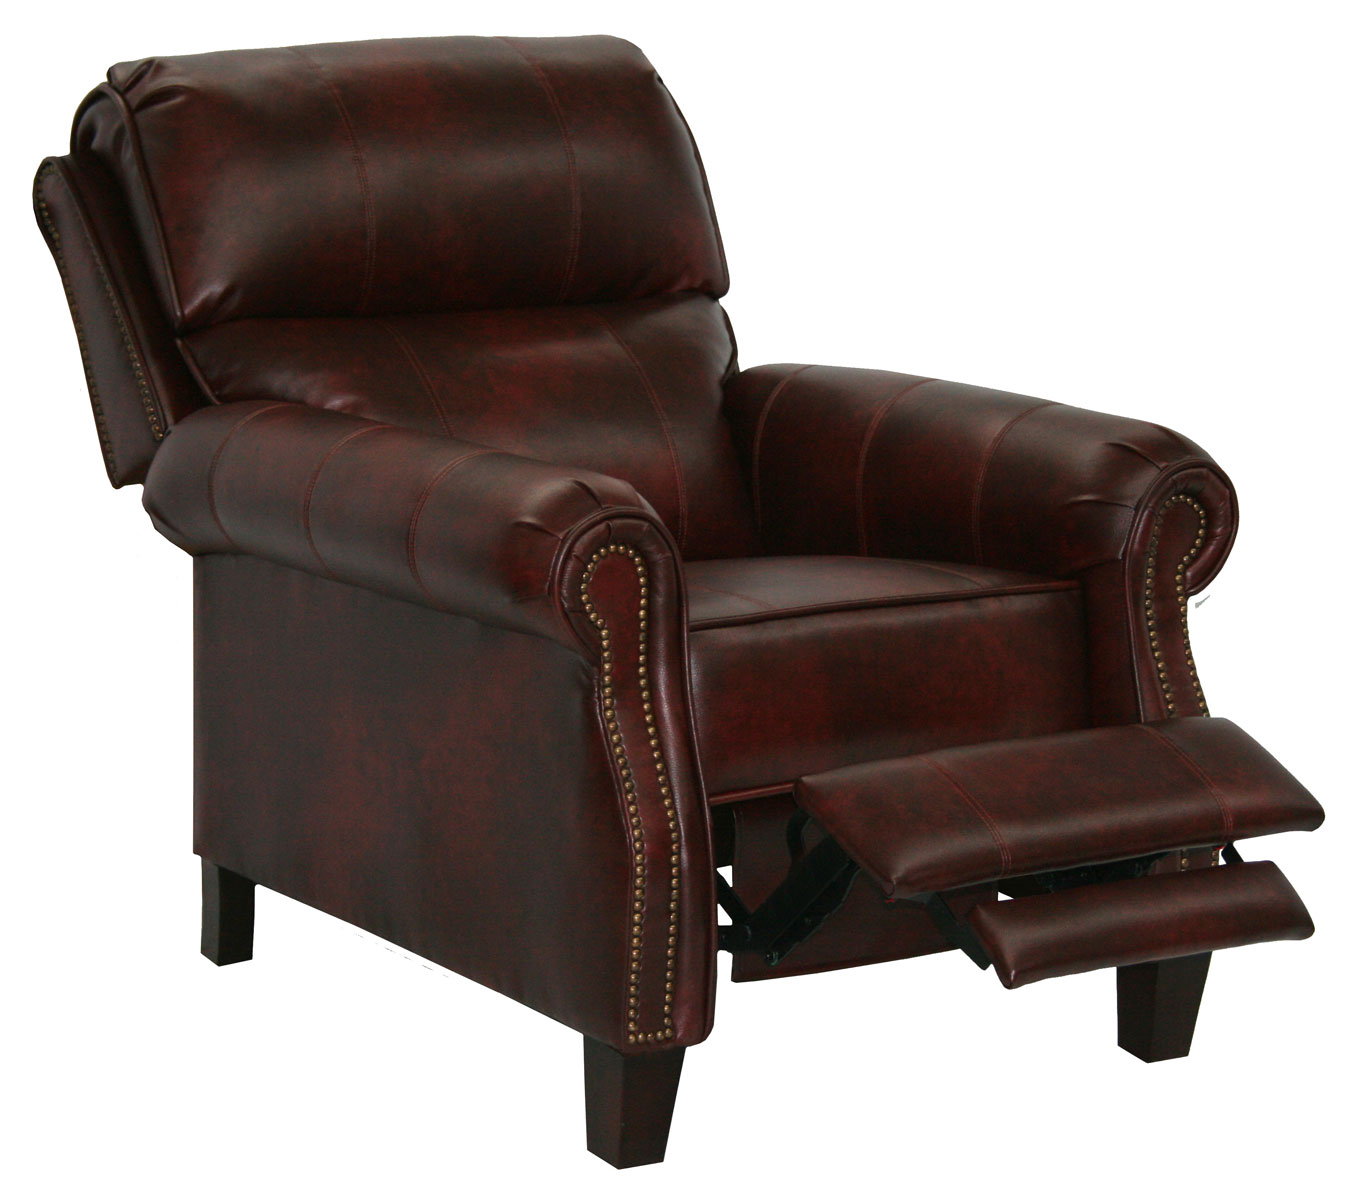 Catnapper Chair Catnapper Frazier Bonded Leather Reclining Chair With